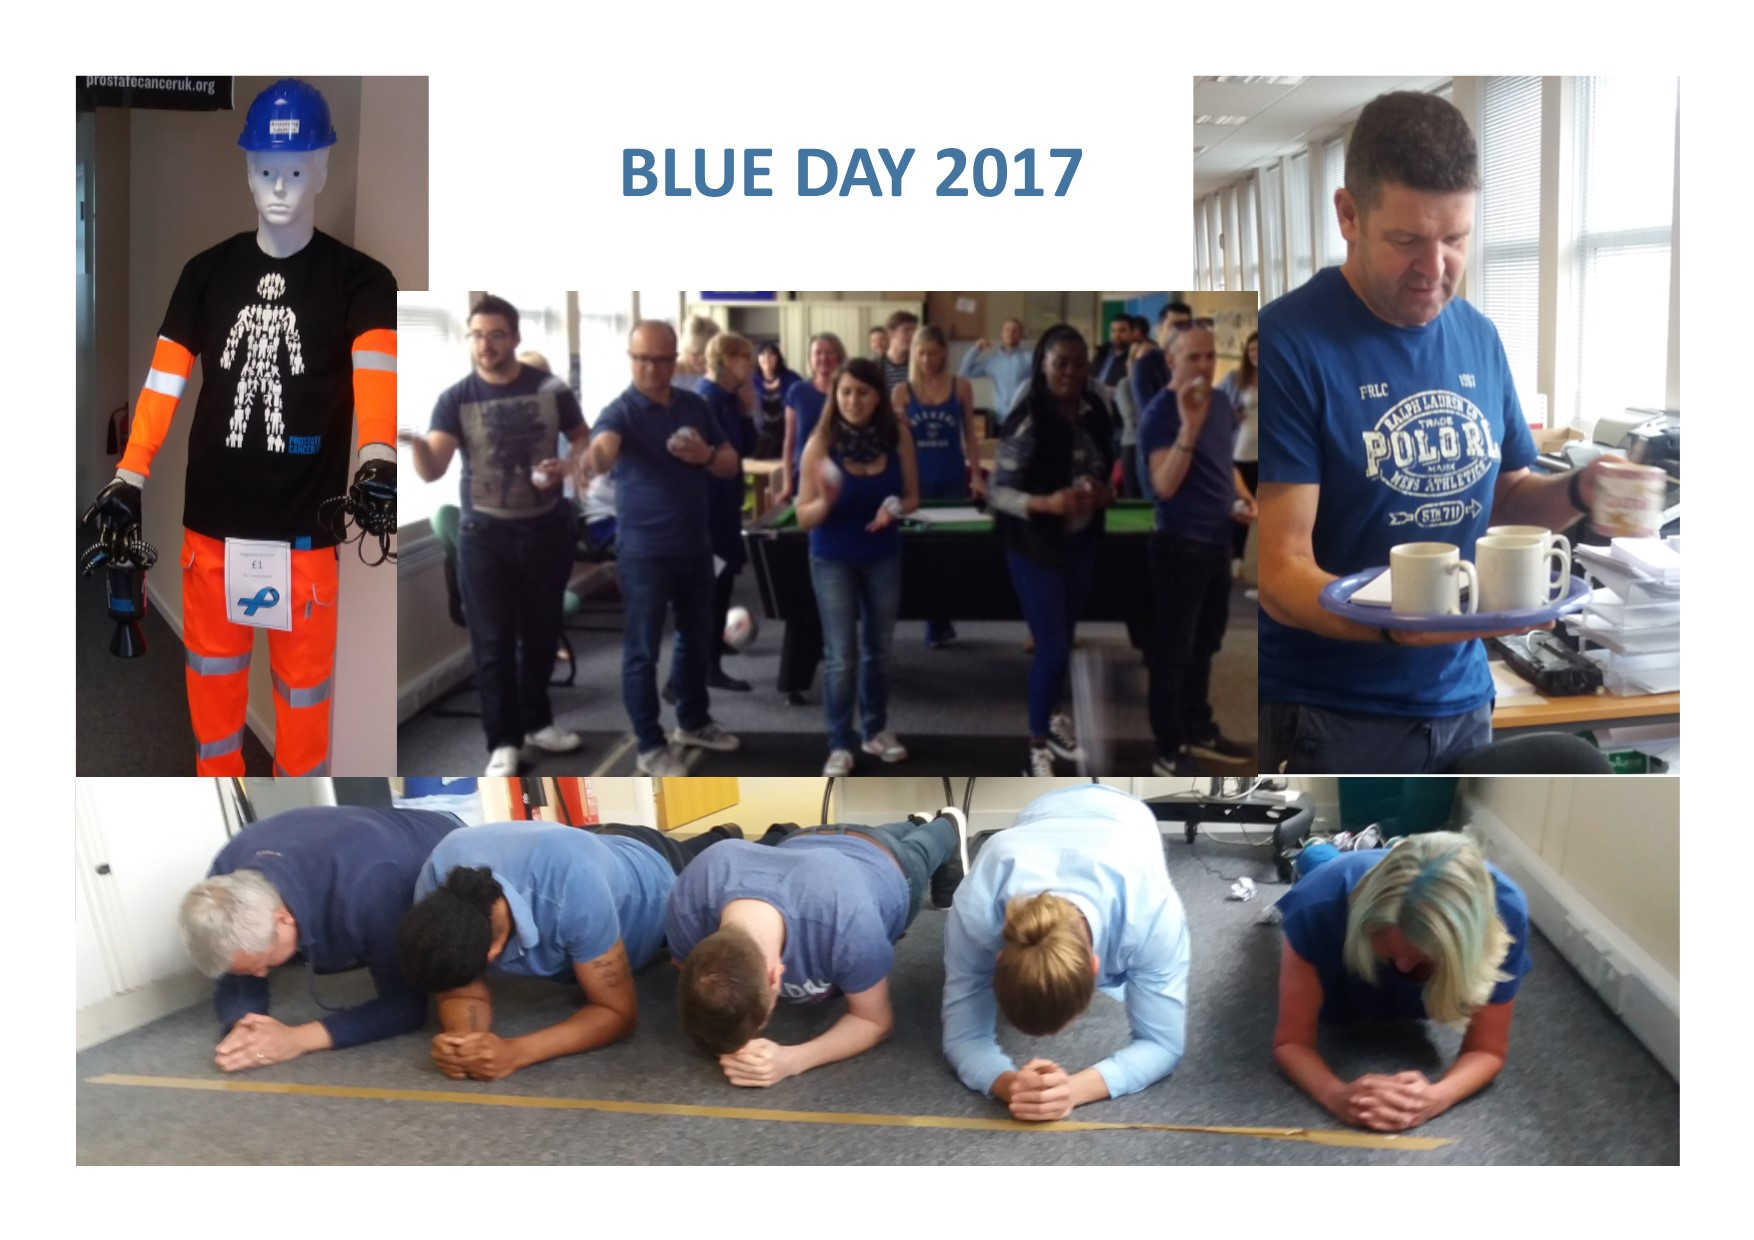 Raising money for Prostate Cancer UK at our annual blue day